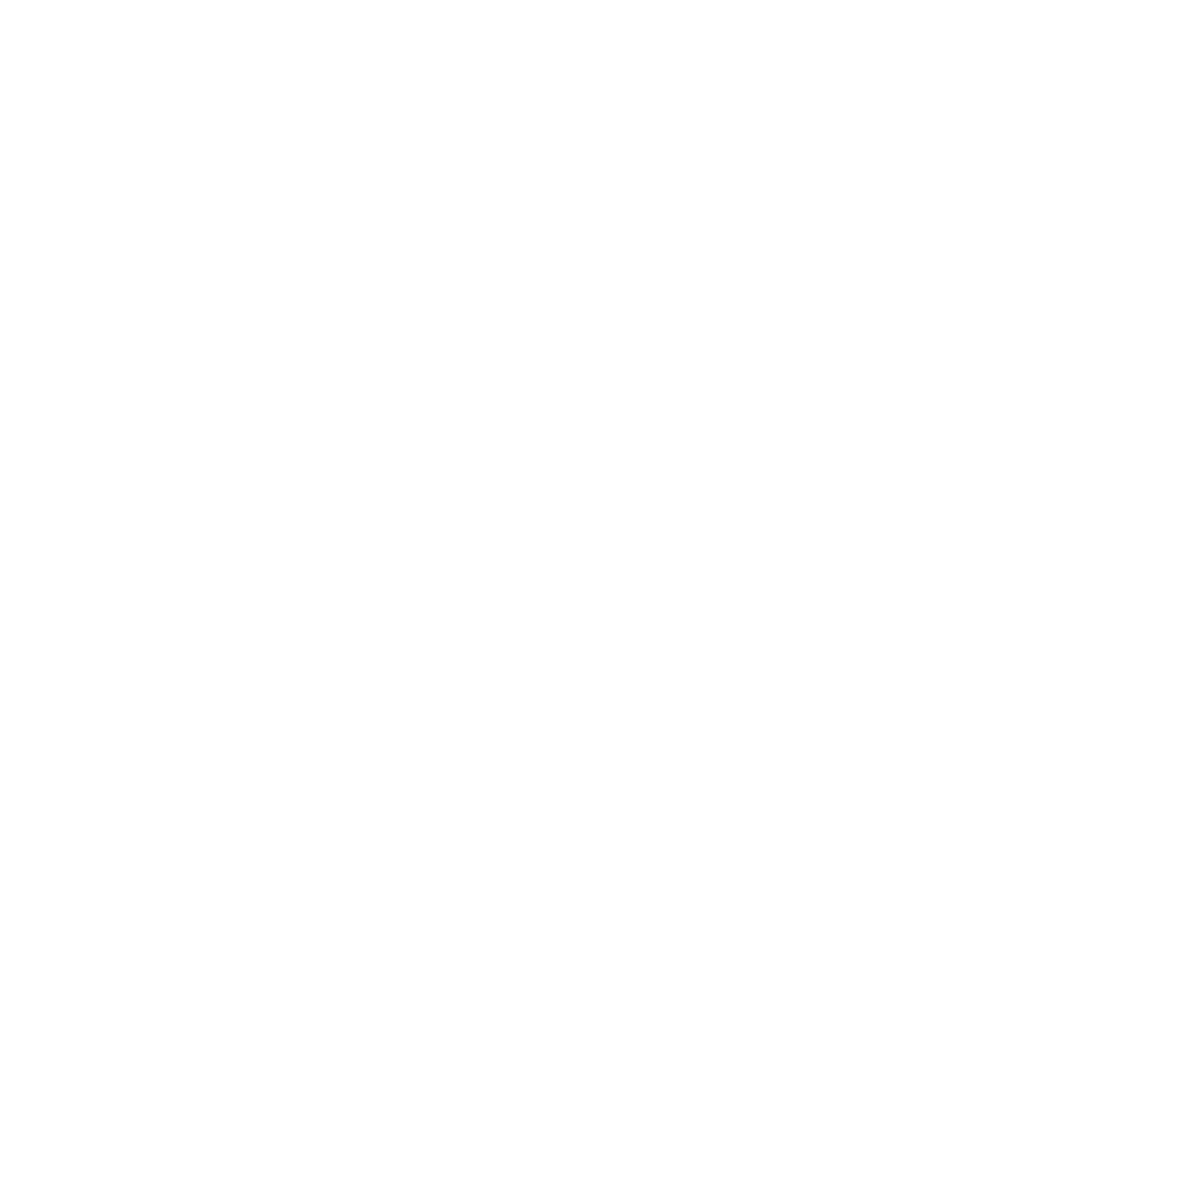 White icon of question mark with circle around it